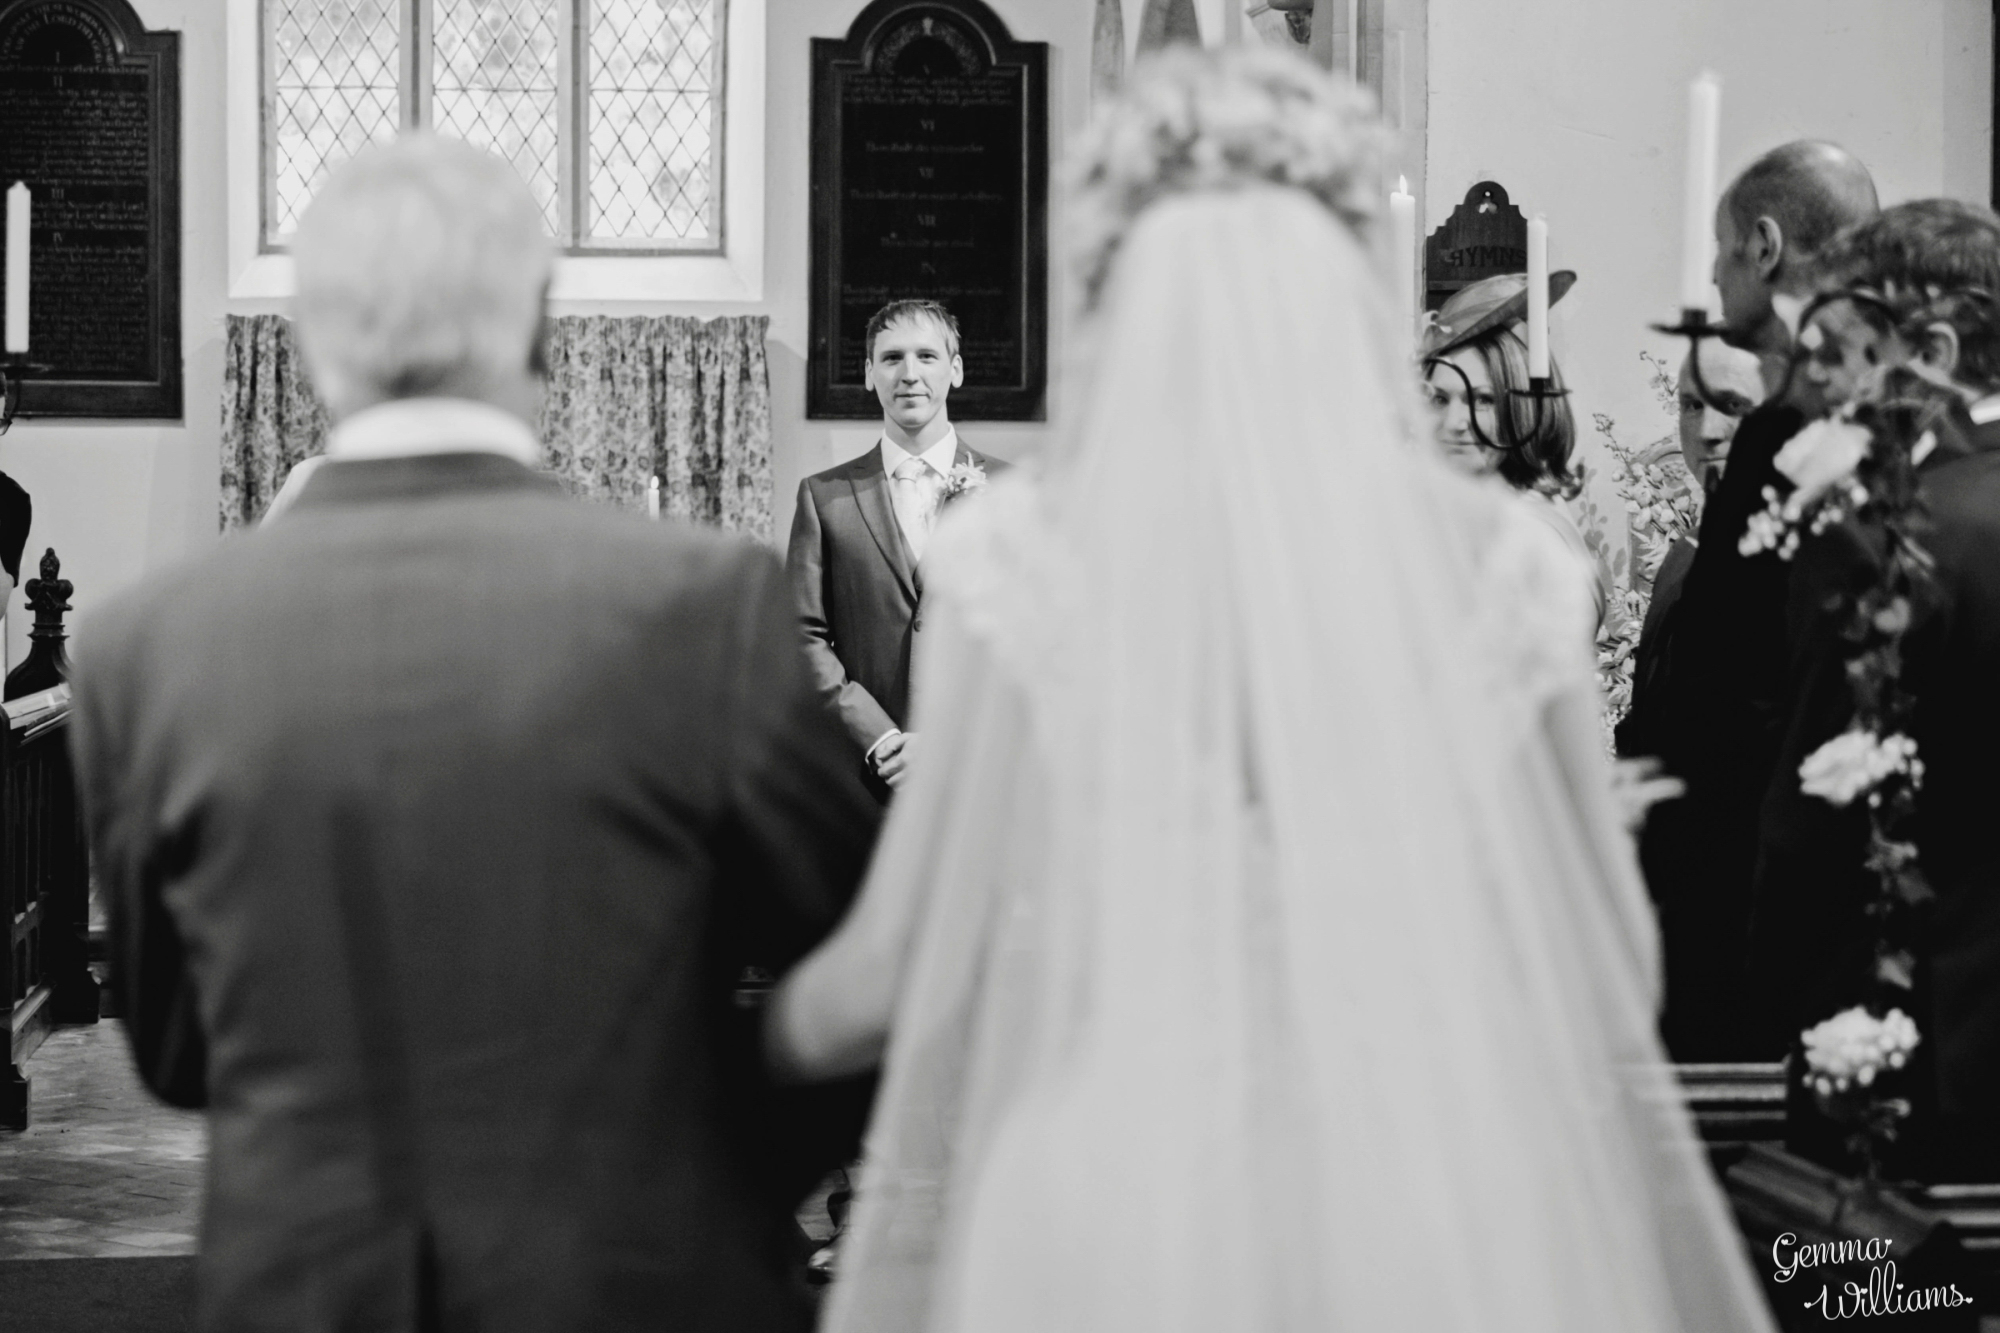 GemmaWilliamsPhotography_Weddings2018_0258.jpg